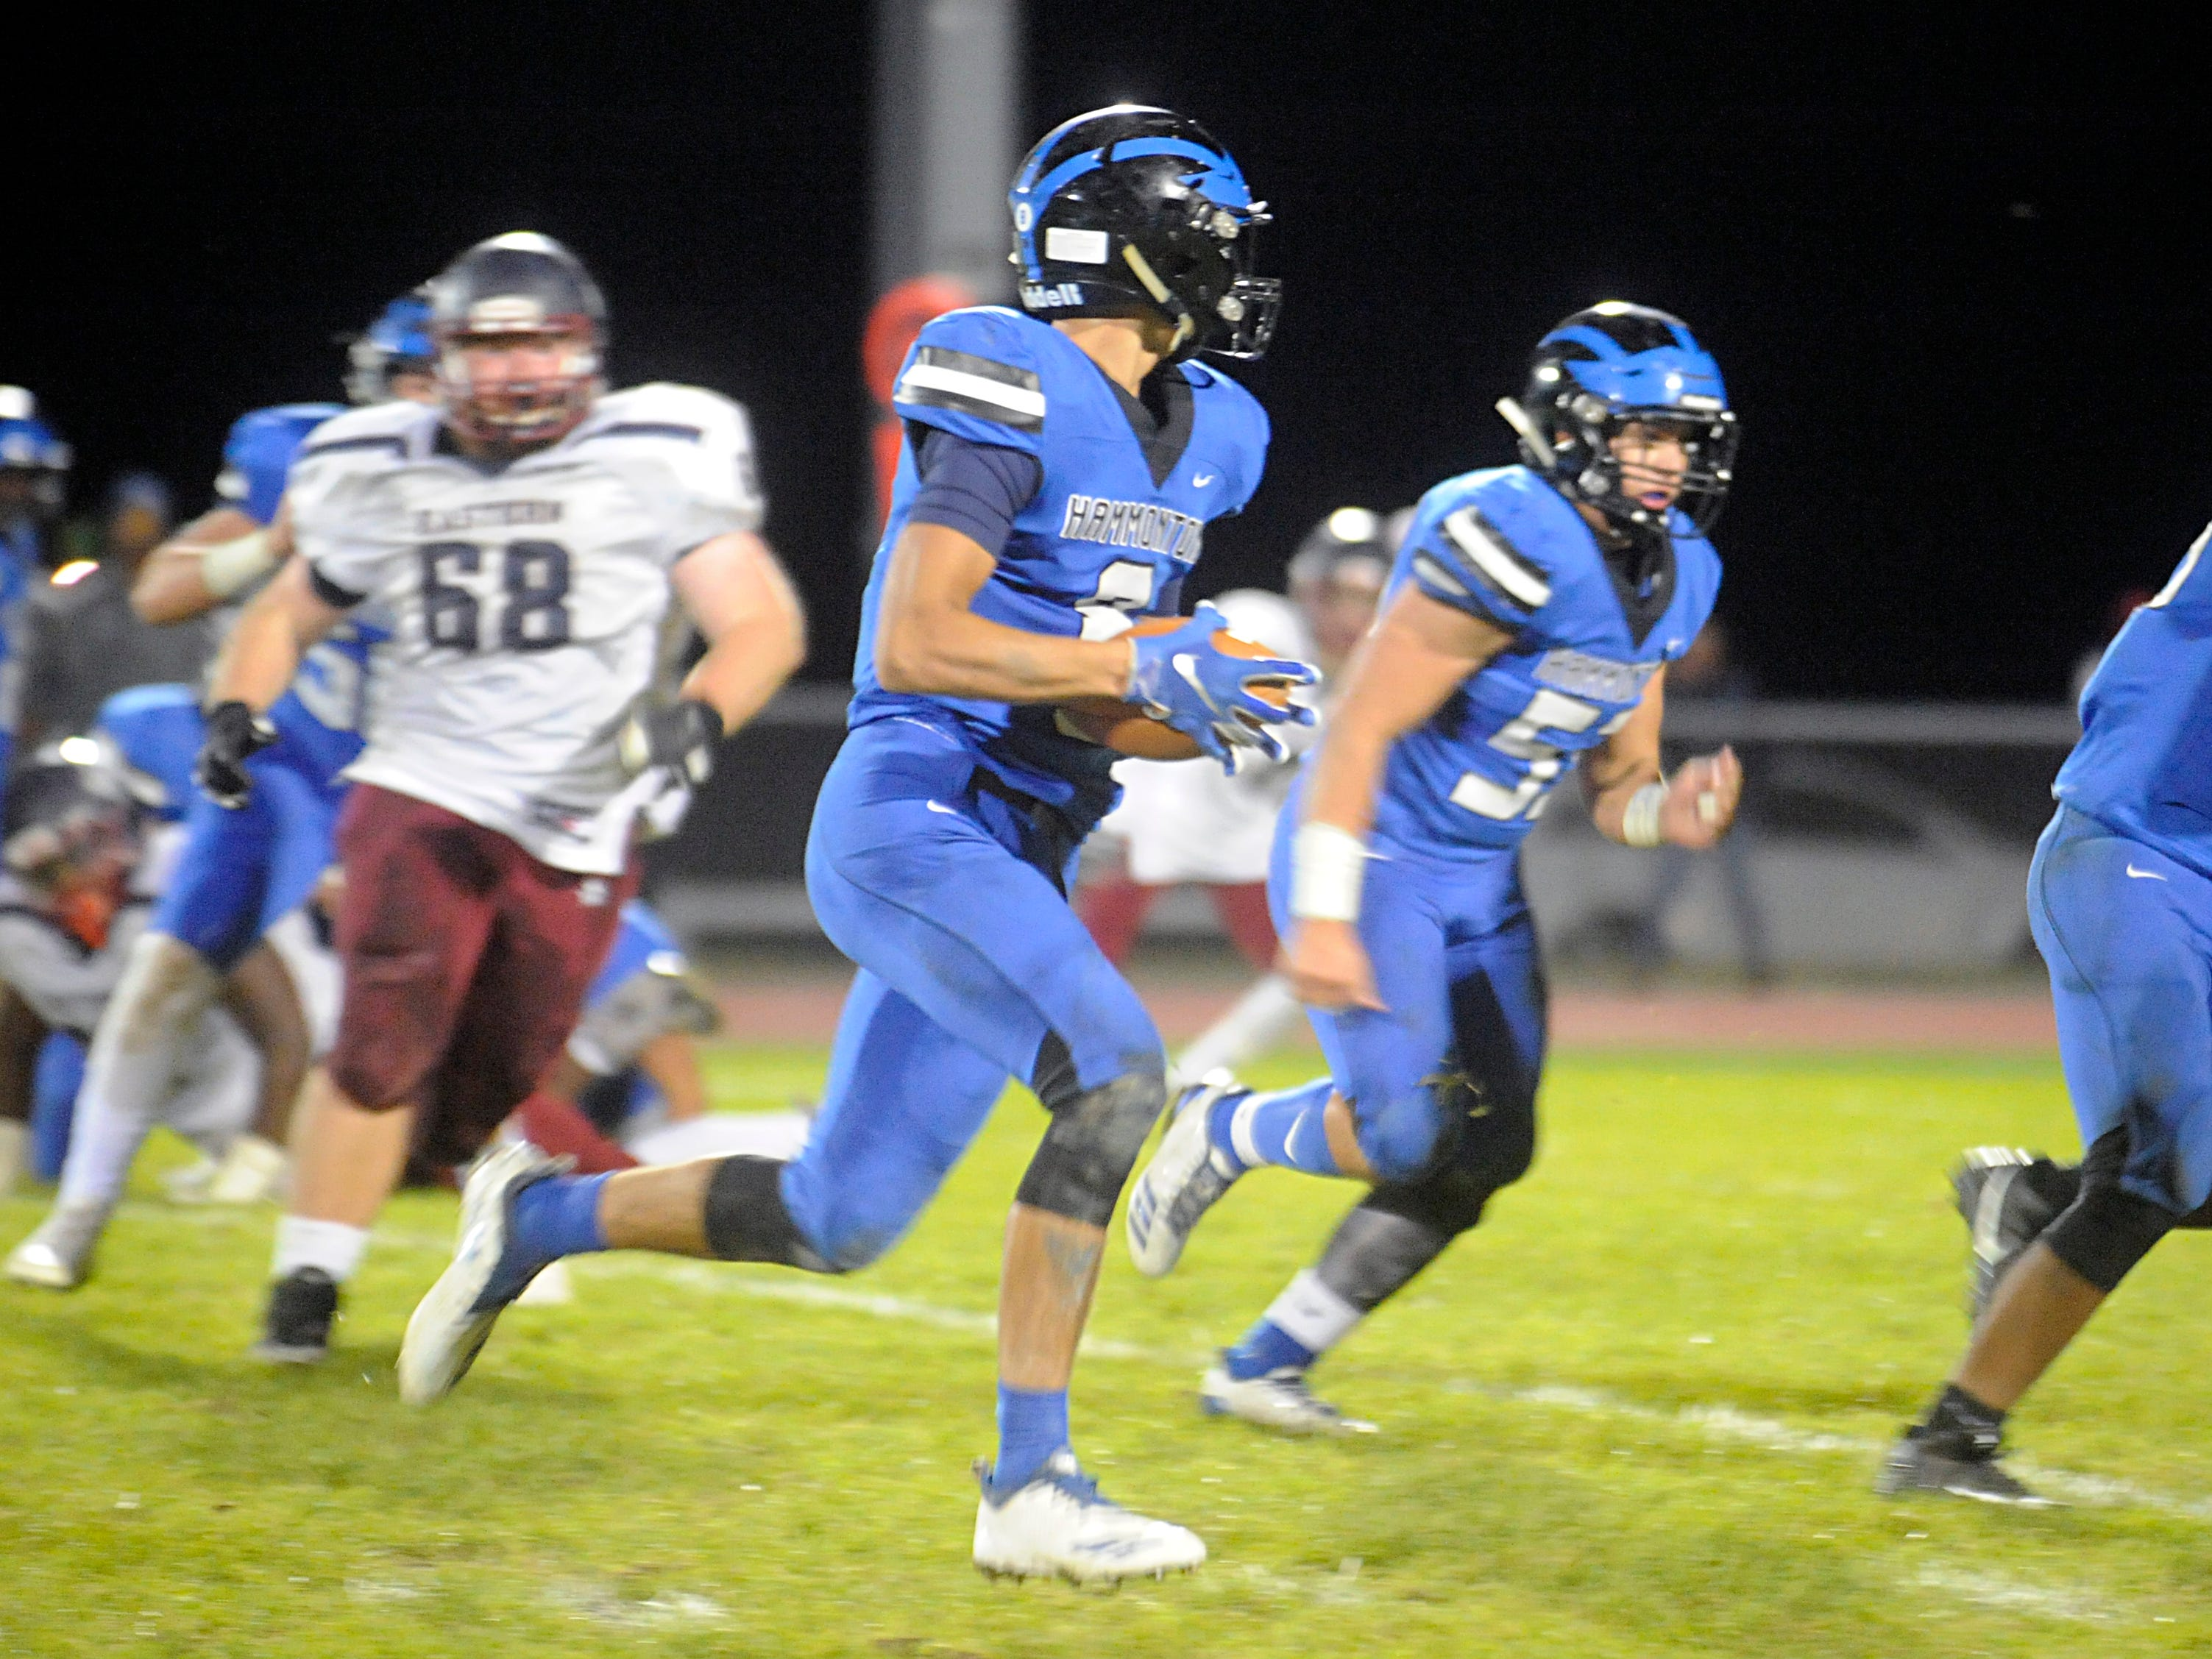 Hammonton's Christian Weissman catches a pass from Ryan Barts and runs for a gain against visiting Eastern. The Vikings topped the Blue Devils, 13-12, on Friday,